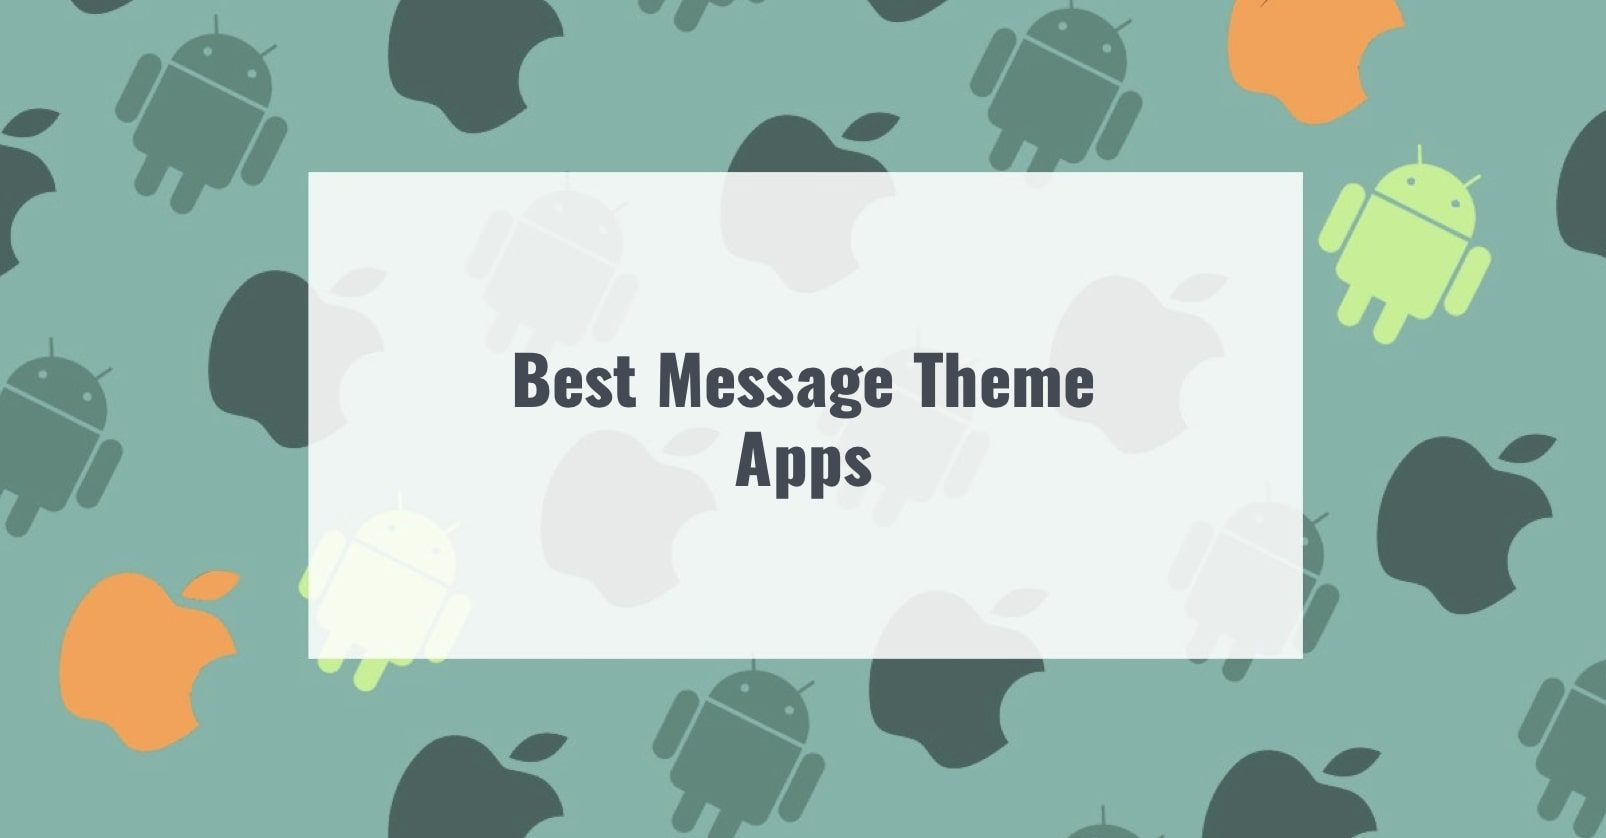 Best Message Theme Apps